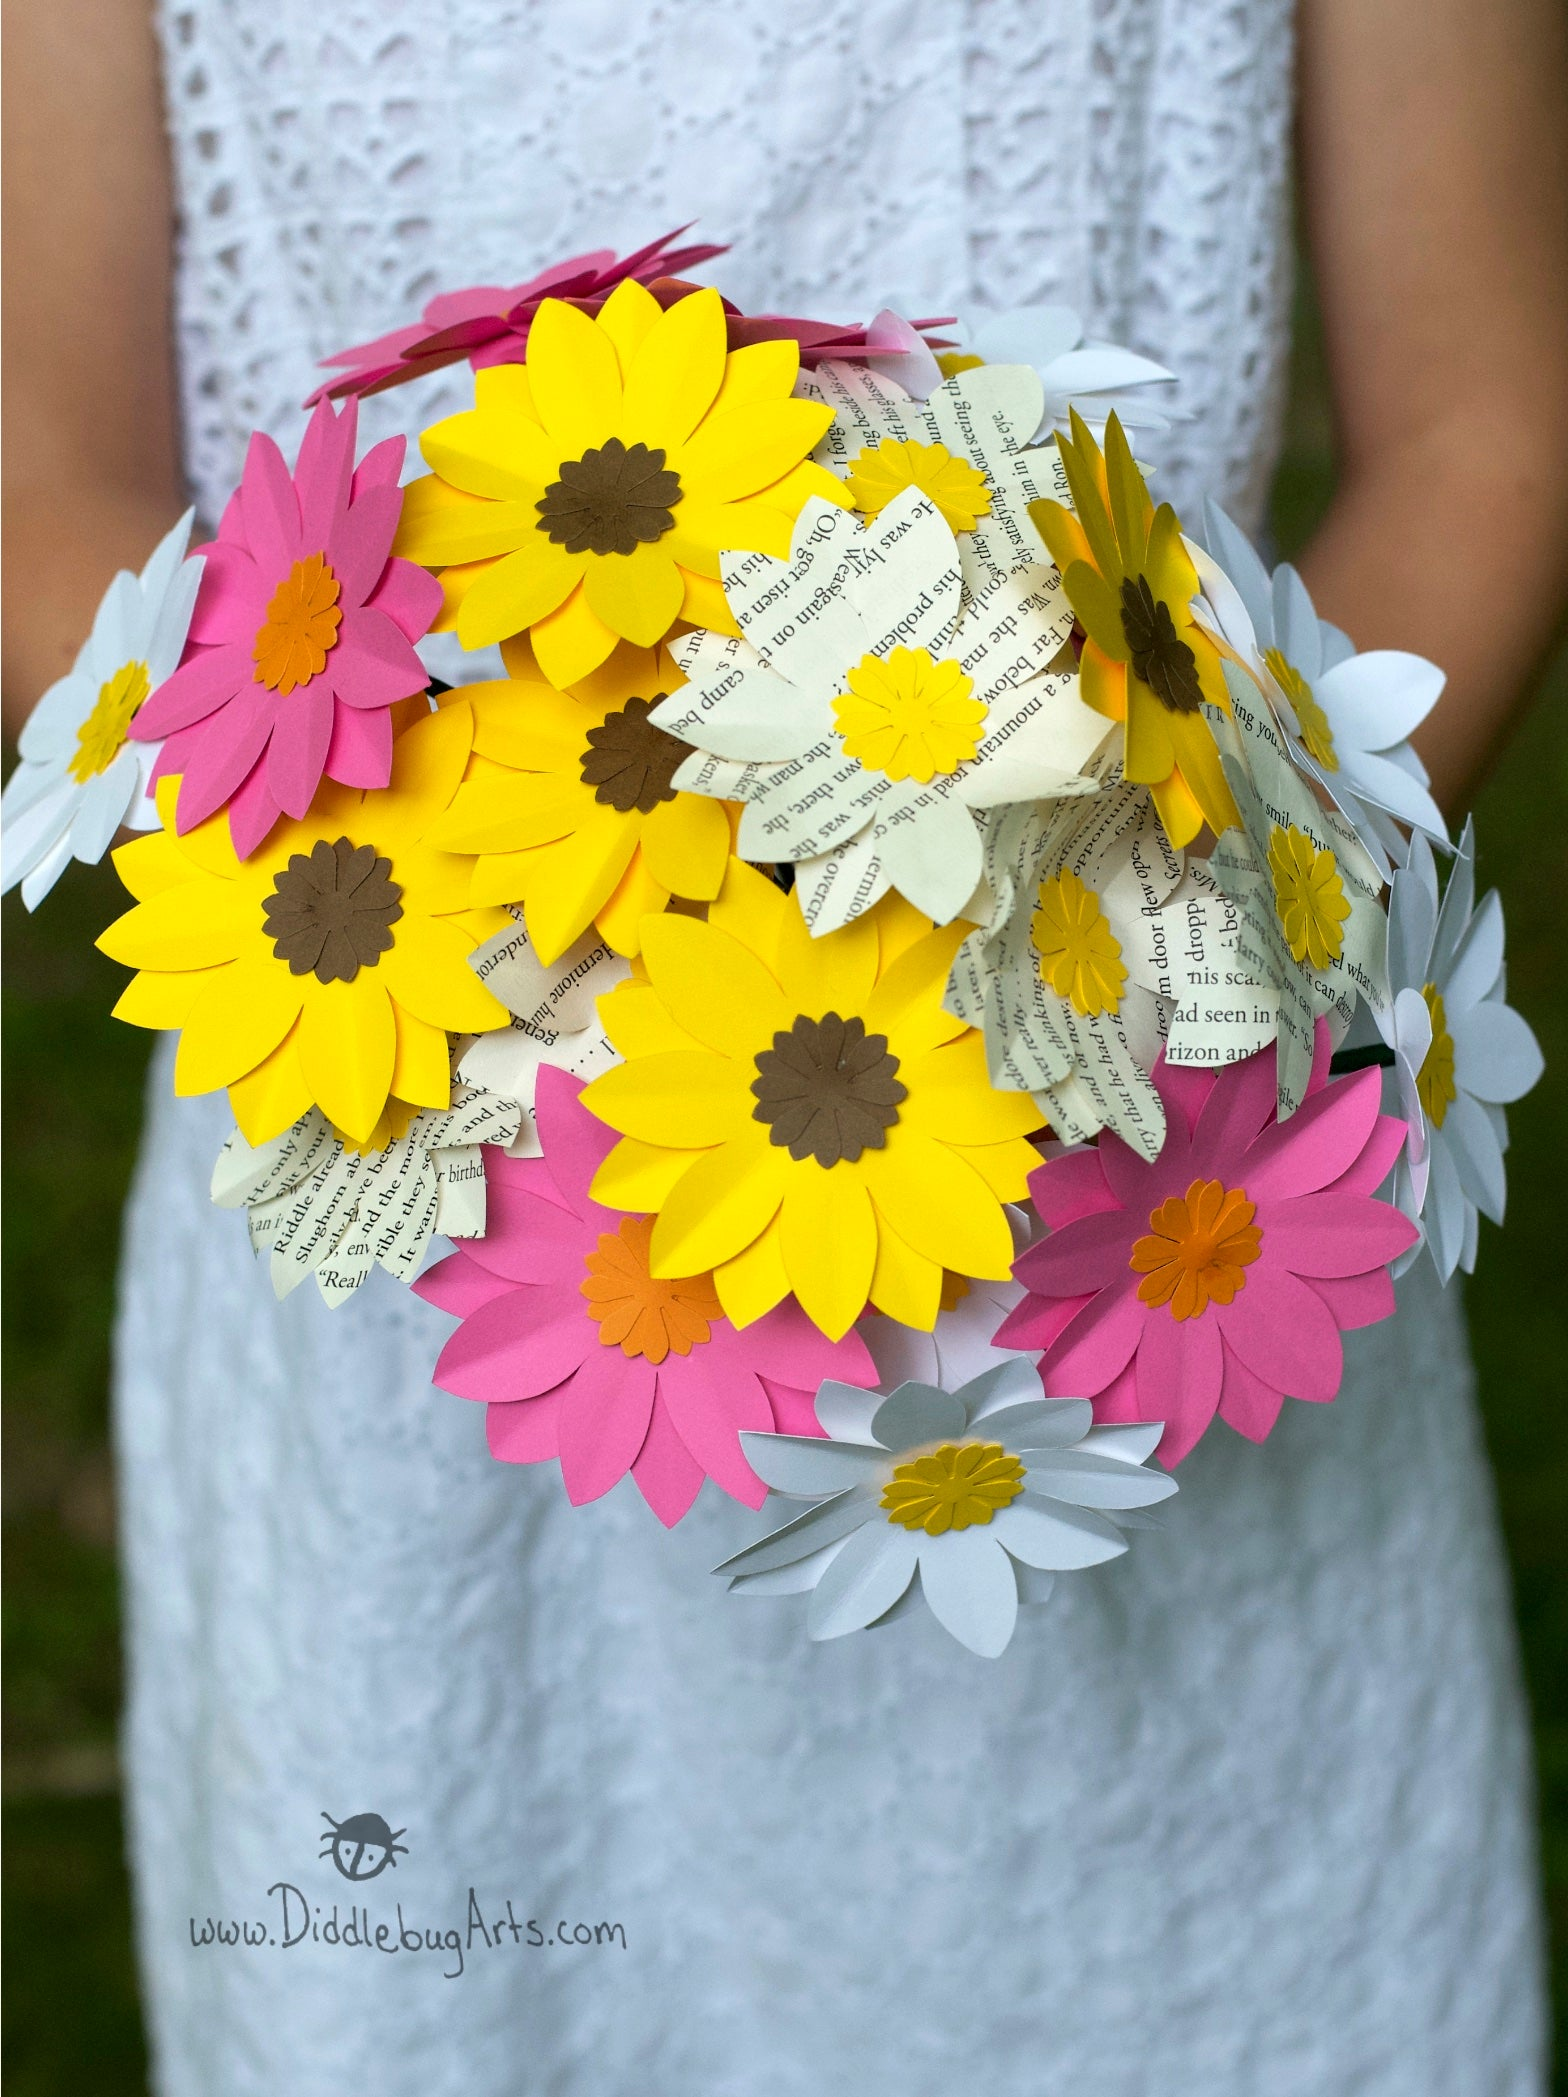 Mixed Daisy Bouquet with Two Dozen Daisies